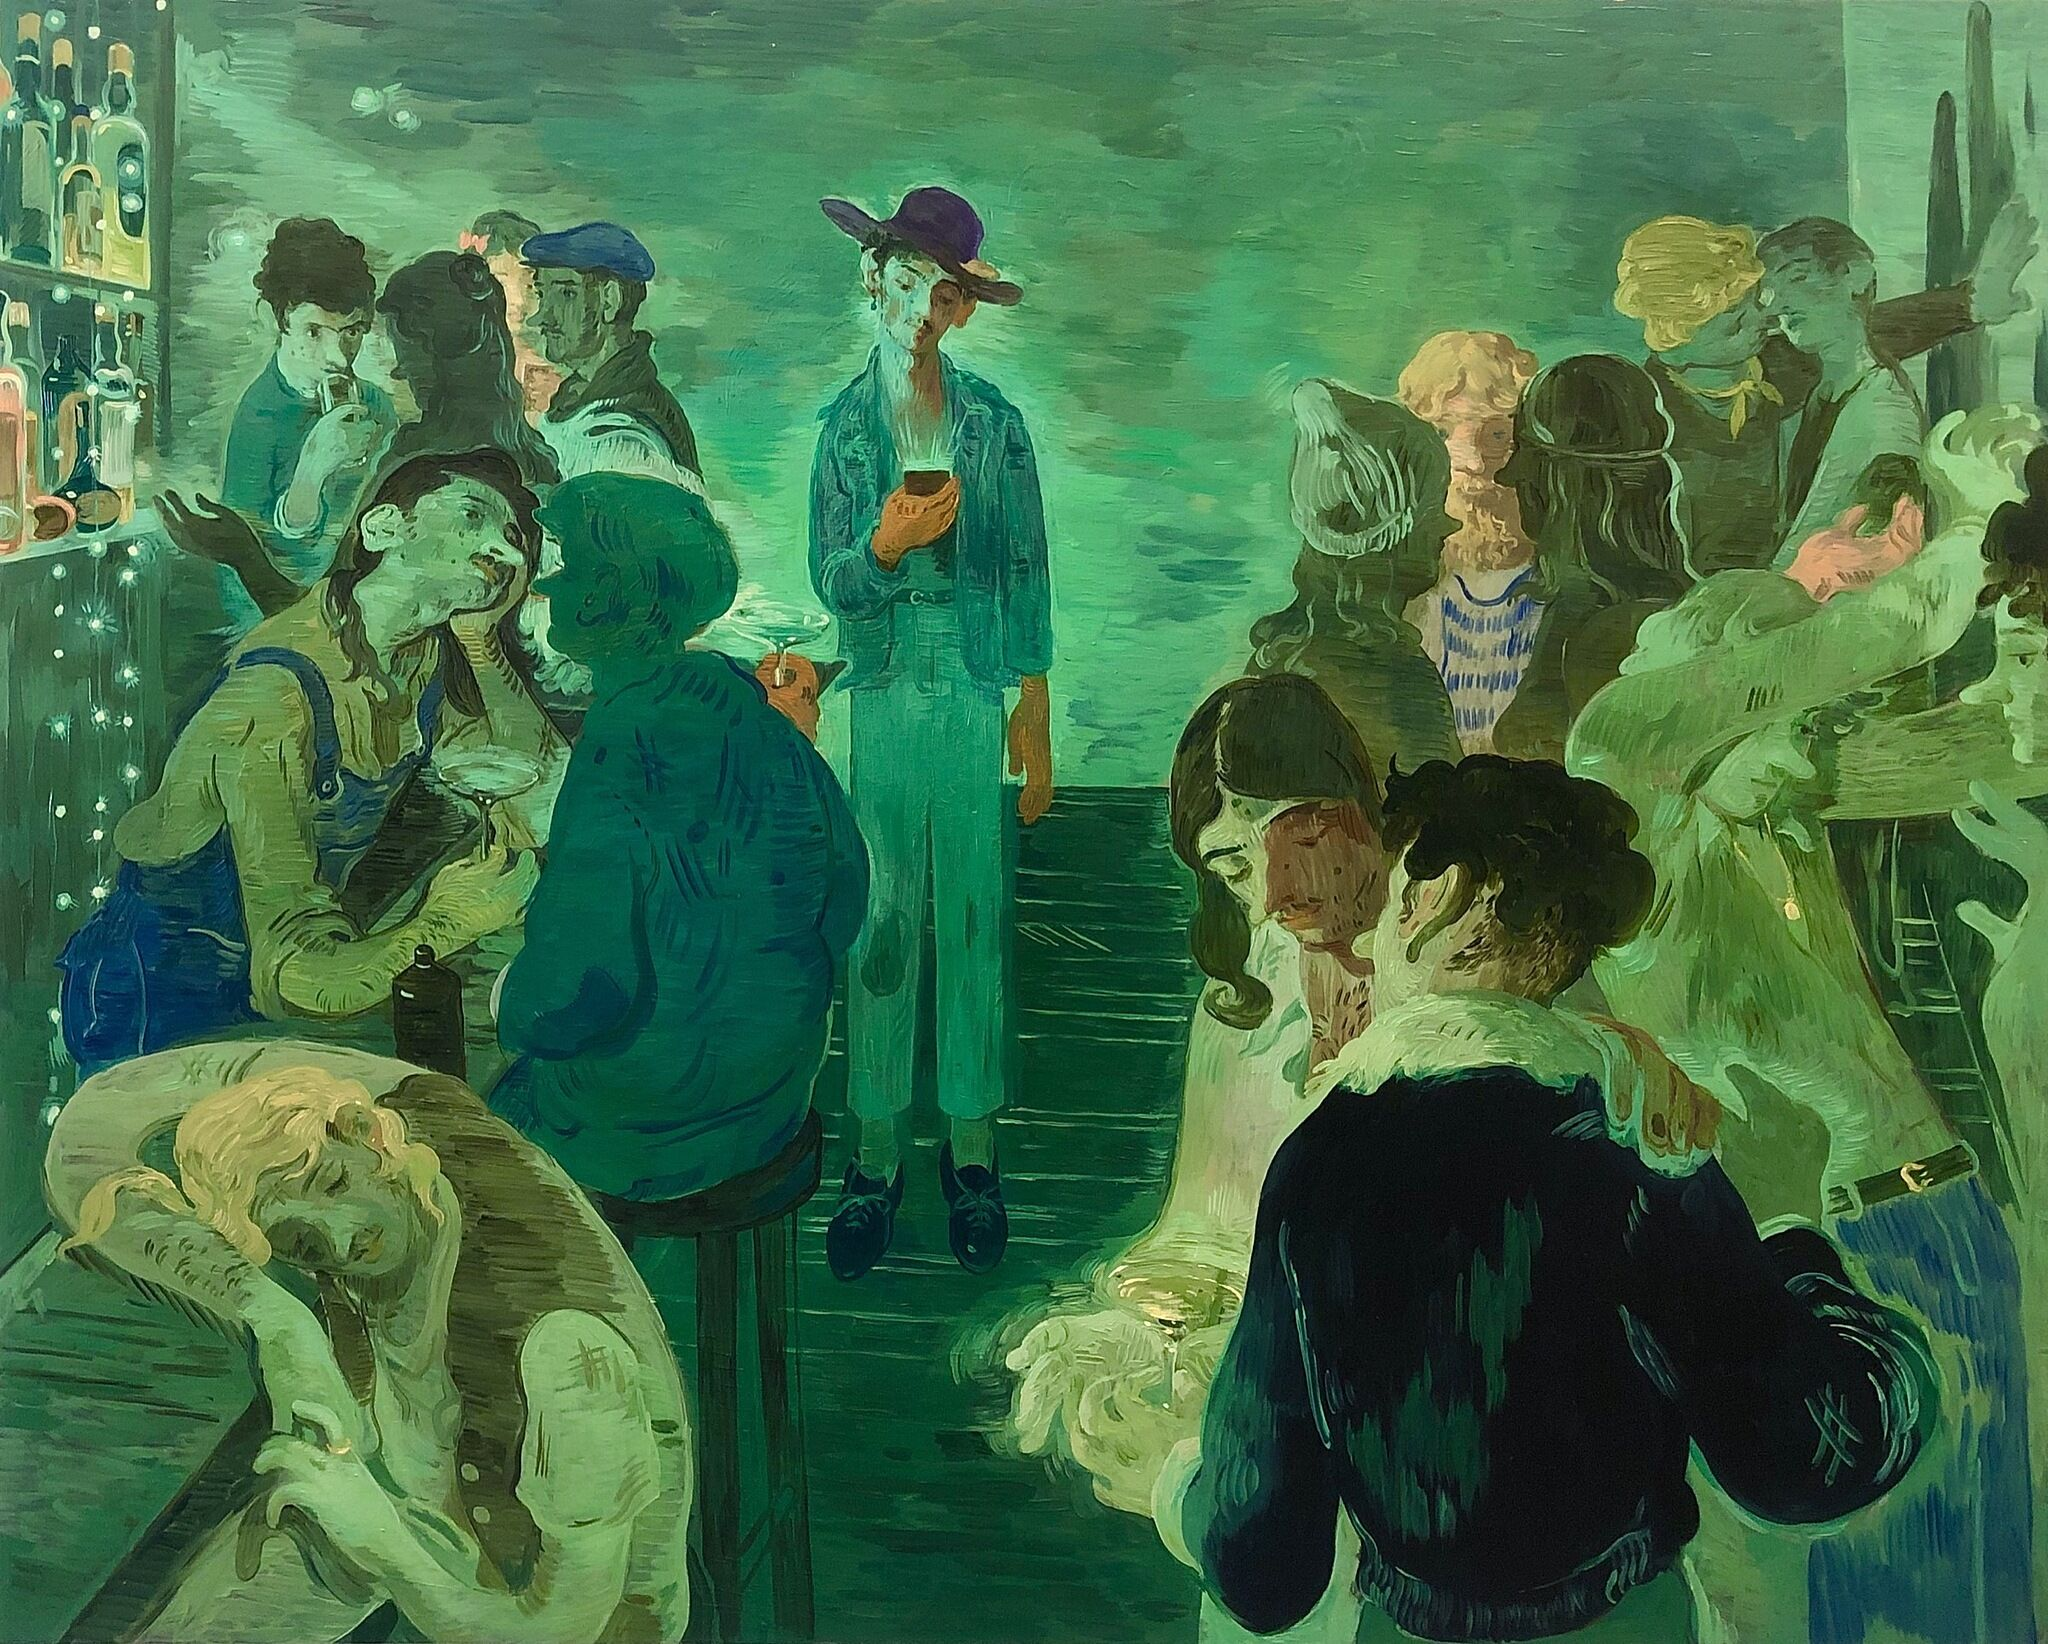 A painting of a bar lit in green light filled with people dancing, kissing, checking their phones, and drinking.